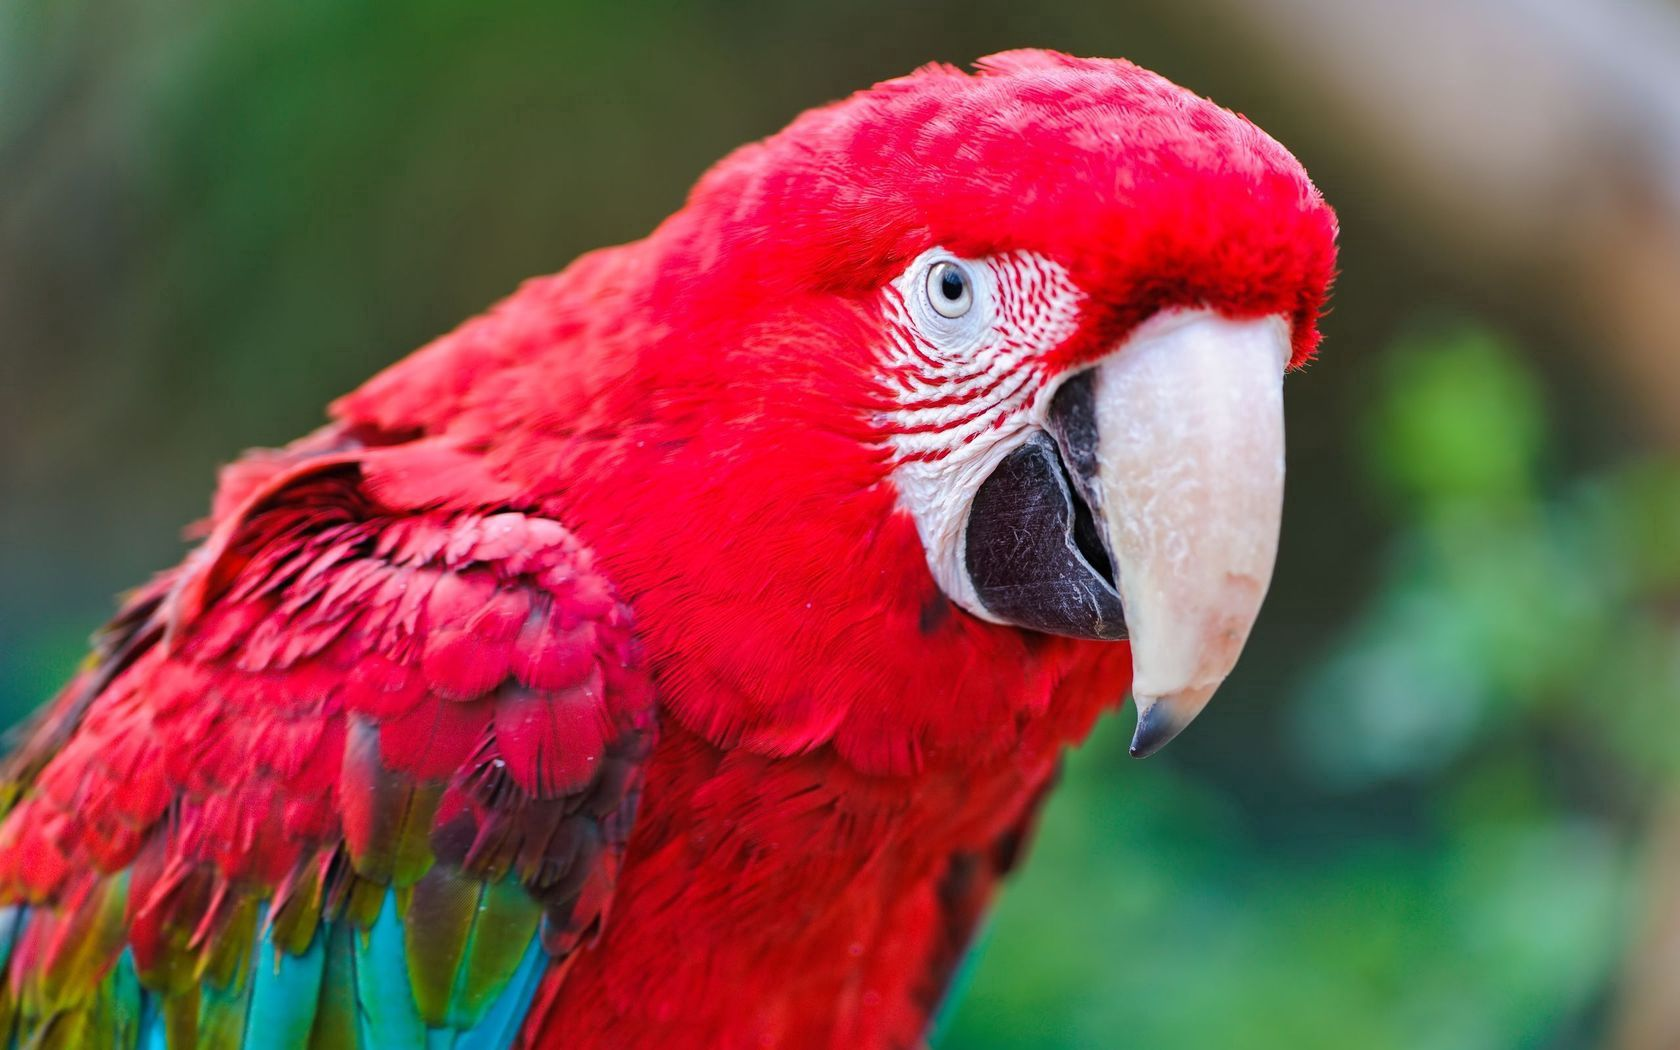 146304 download wallpaper Animals, Parrots, Macaw, Bird, Color, Feather screensavers and pictures for free